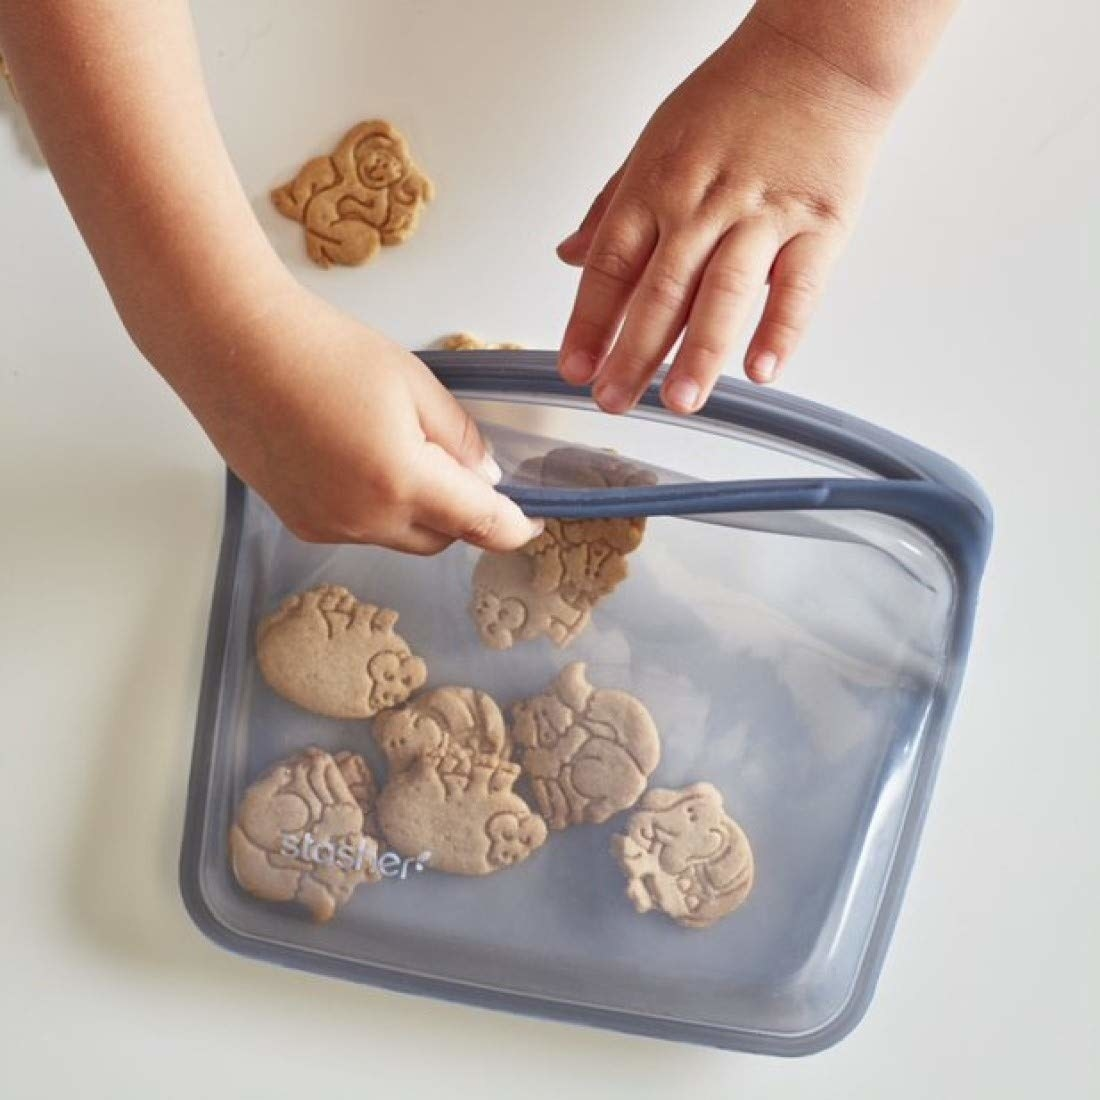 child's hand reaching for animal crackers in the gray bag